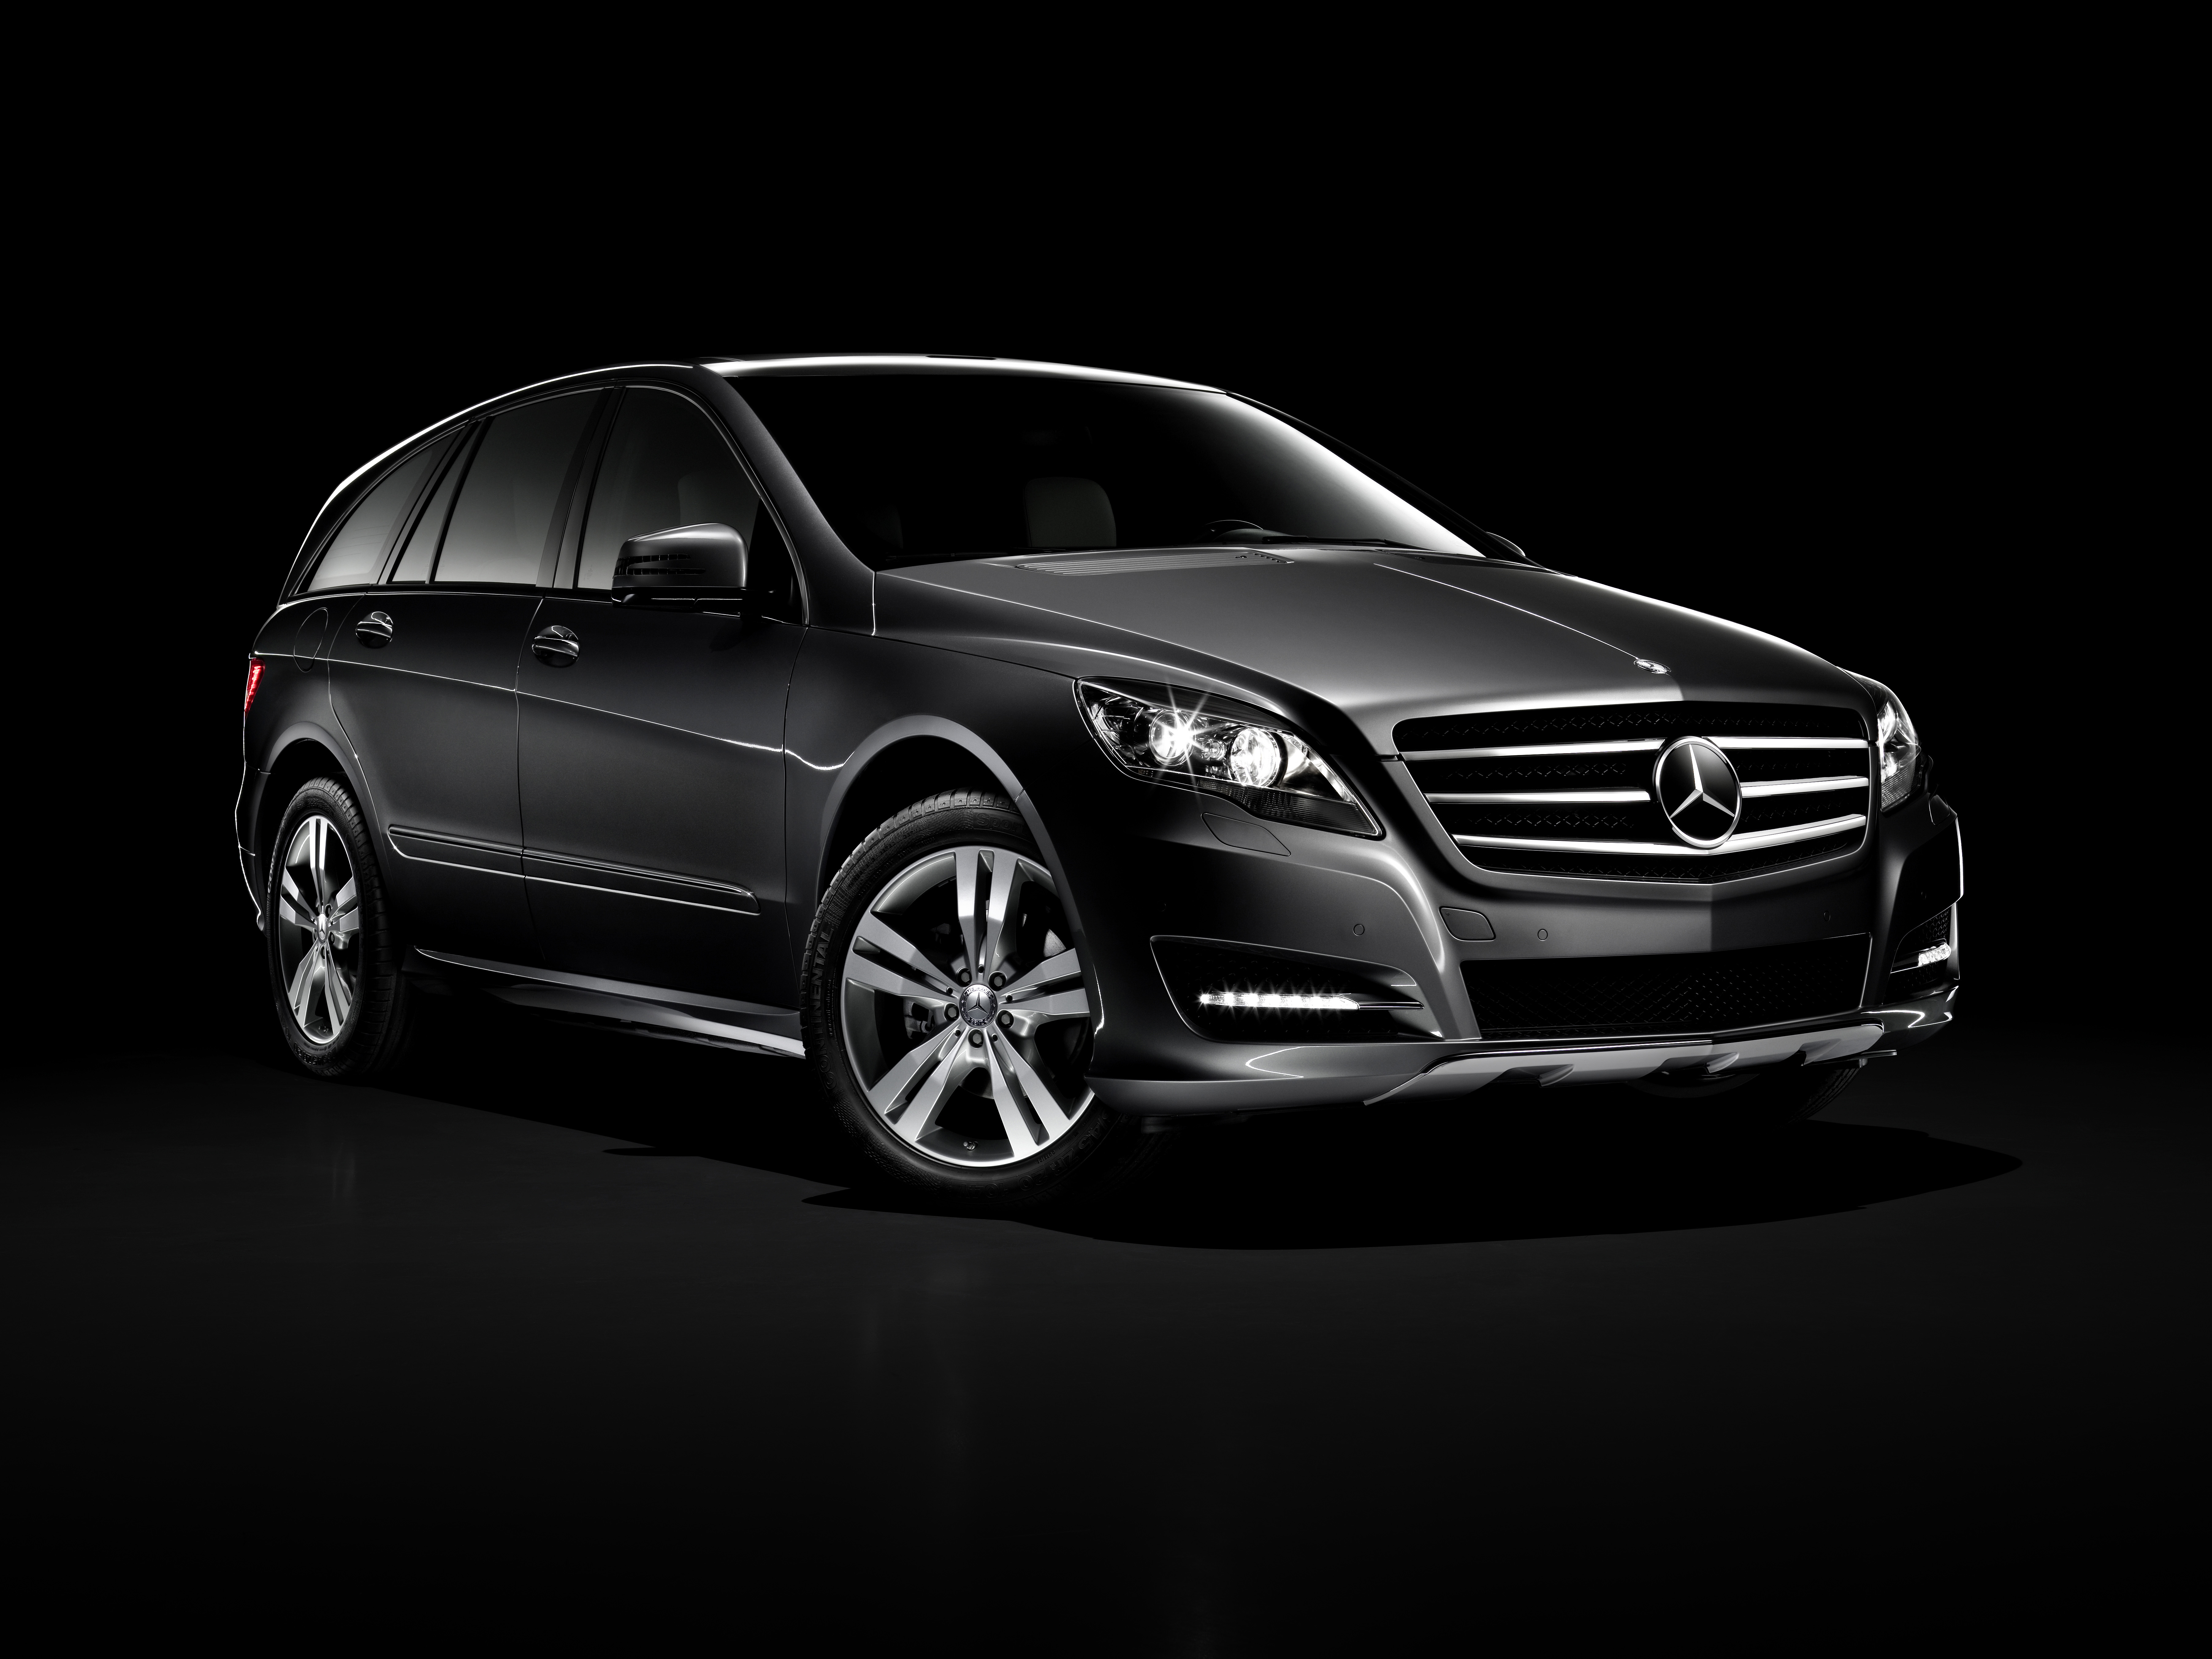 mercedes-benz wallpaper (Mercedes-Benz R-Class)